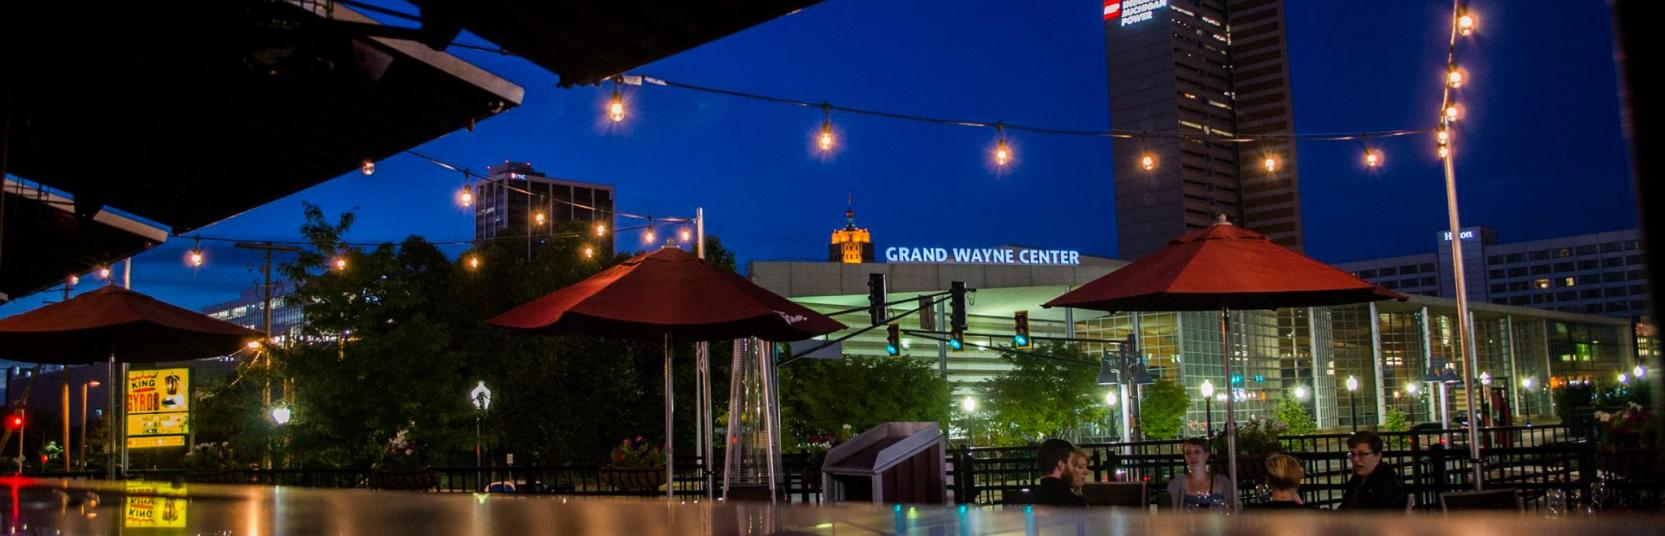 Outdoor Dining This Summer In Fort Wayne Indiana Make A